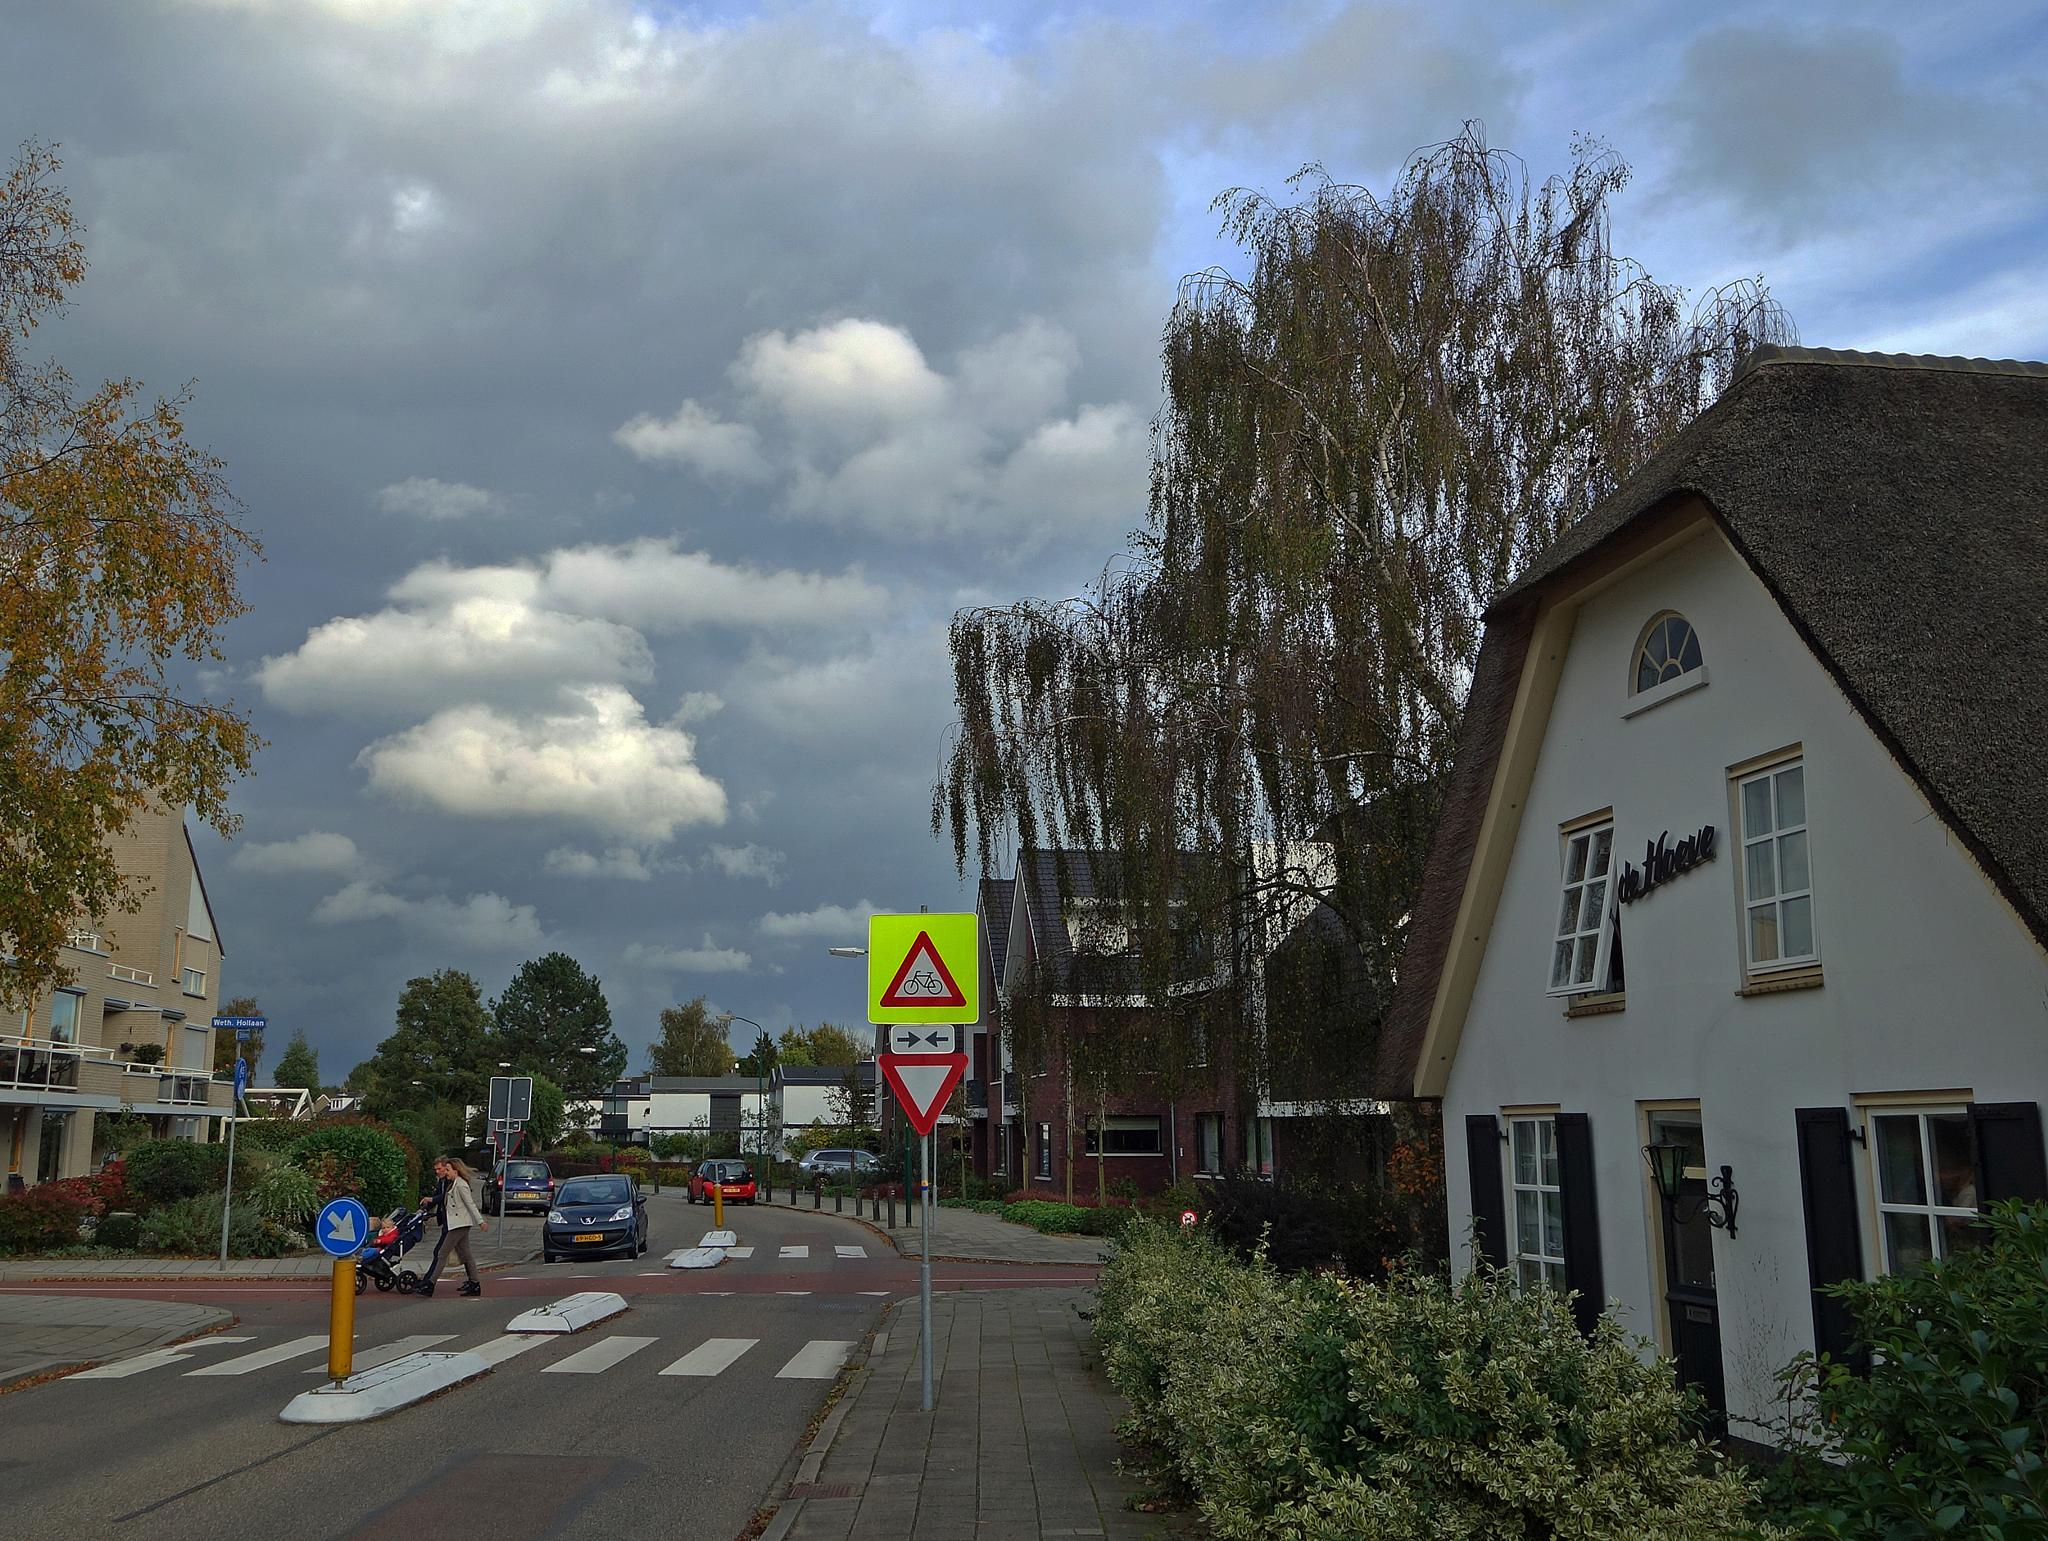 Cloudy day in Odijk by hugodejong35